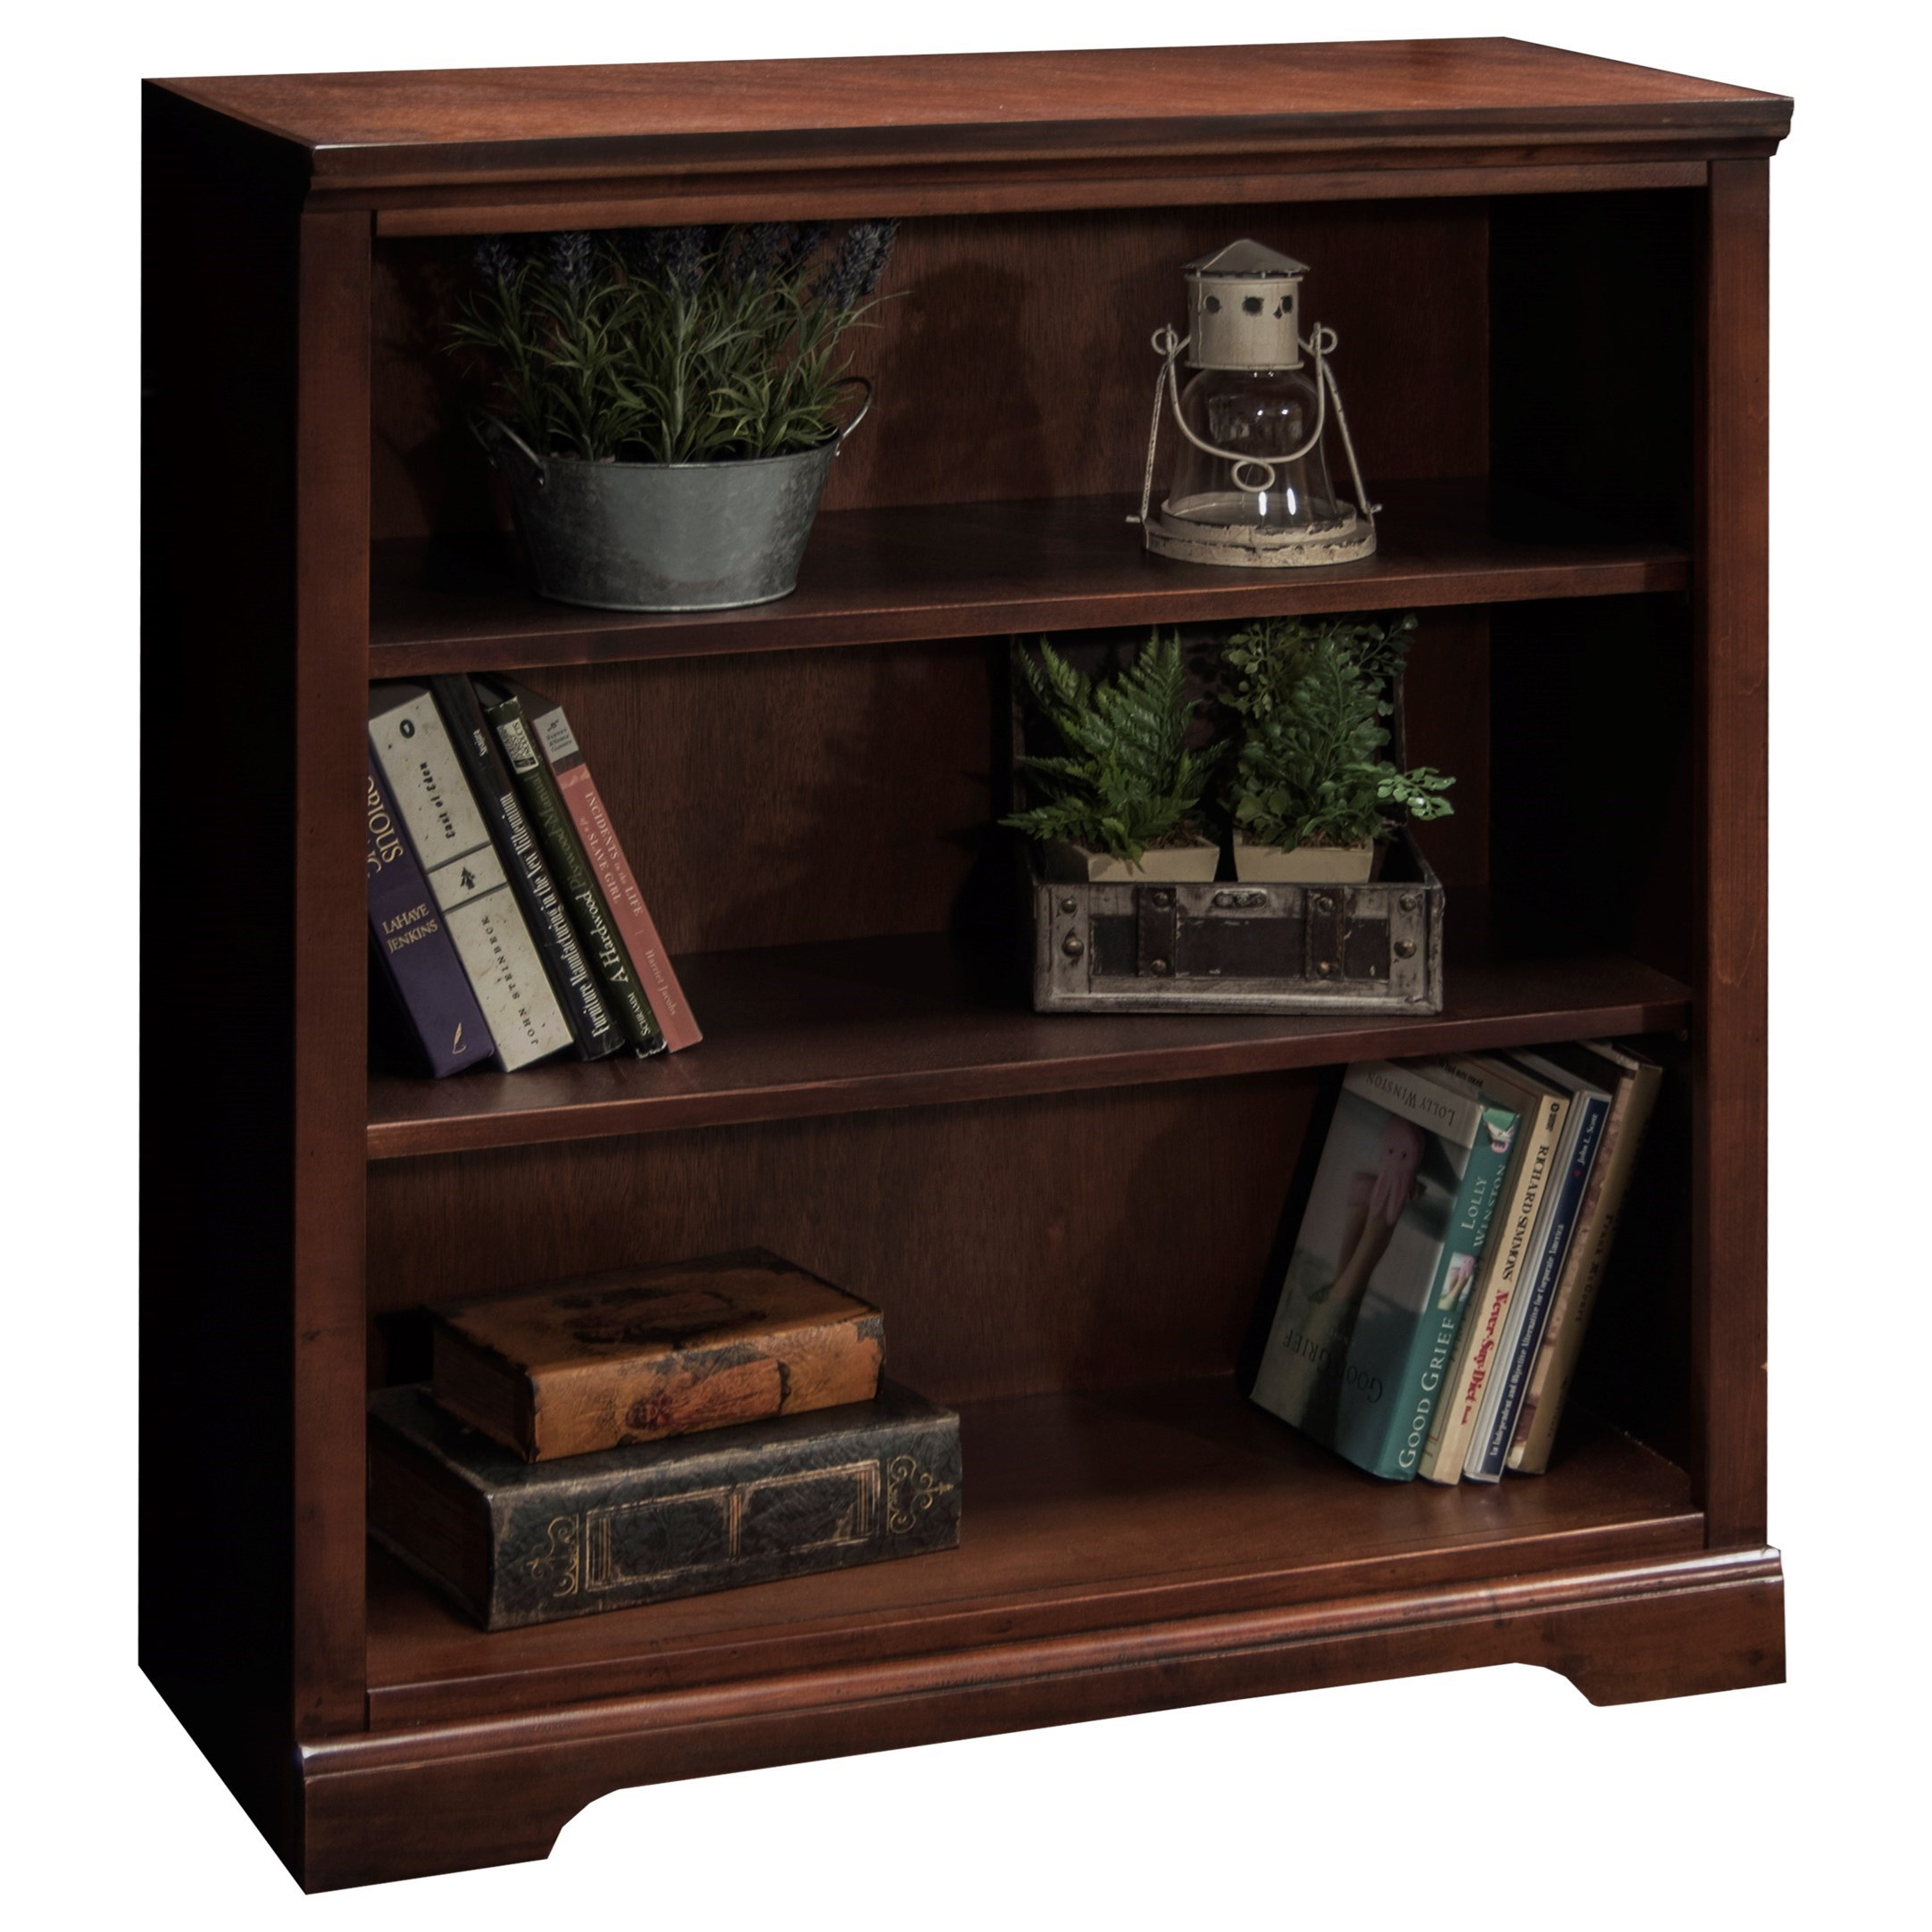 Legends furniture brentwood bw6836 dnc casual 36 bookcase for Hudsons furniture